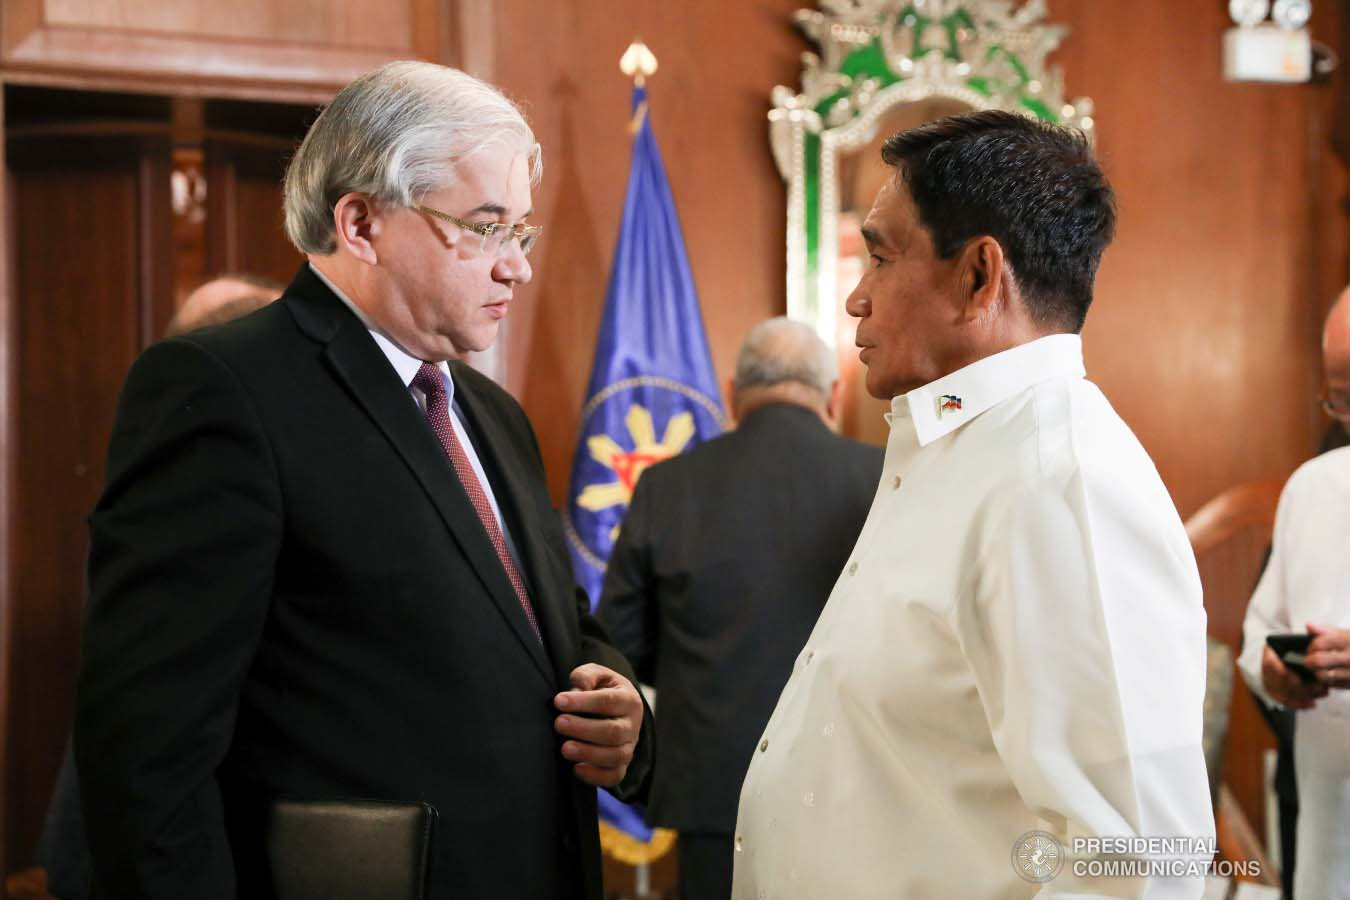 National Security Adviser Hermogenes Esperon Jr. discusses matters with Russian Ambassador to the Philippines Igor Khovaev who paid a courtesy call on President Rodrigo Roa Duterte at the Malacañan Palace on January 31, 2019. TOTO LOZANO/PRESIDENTIAL PHOTO